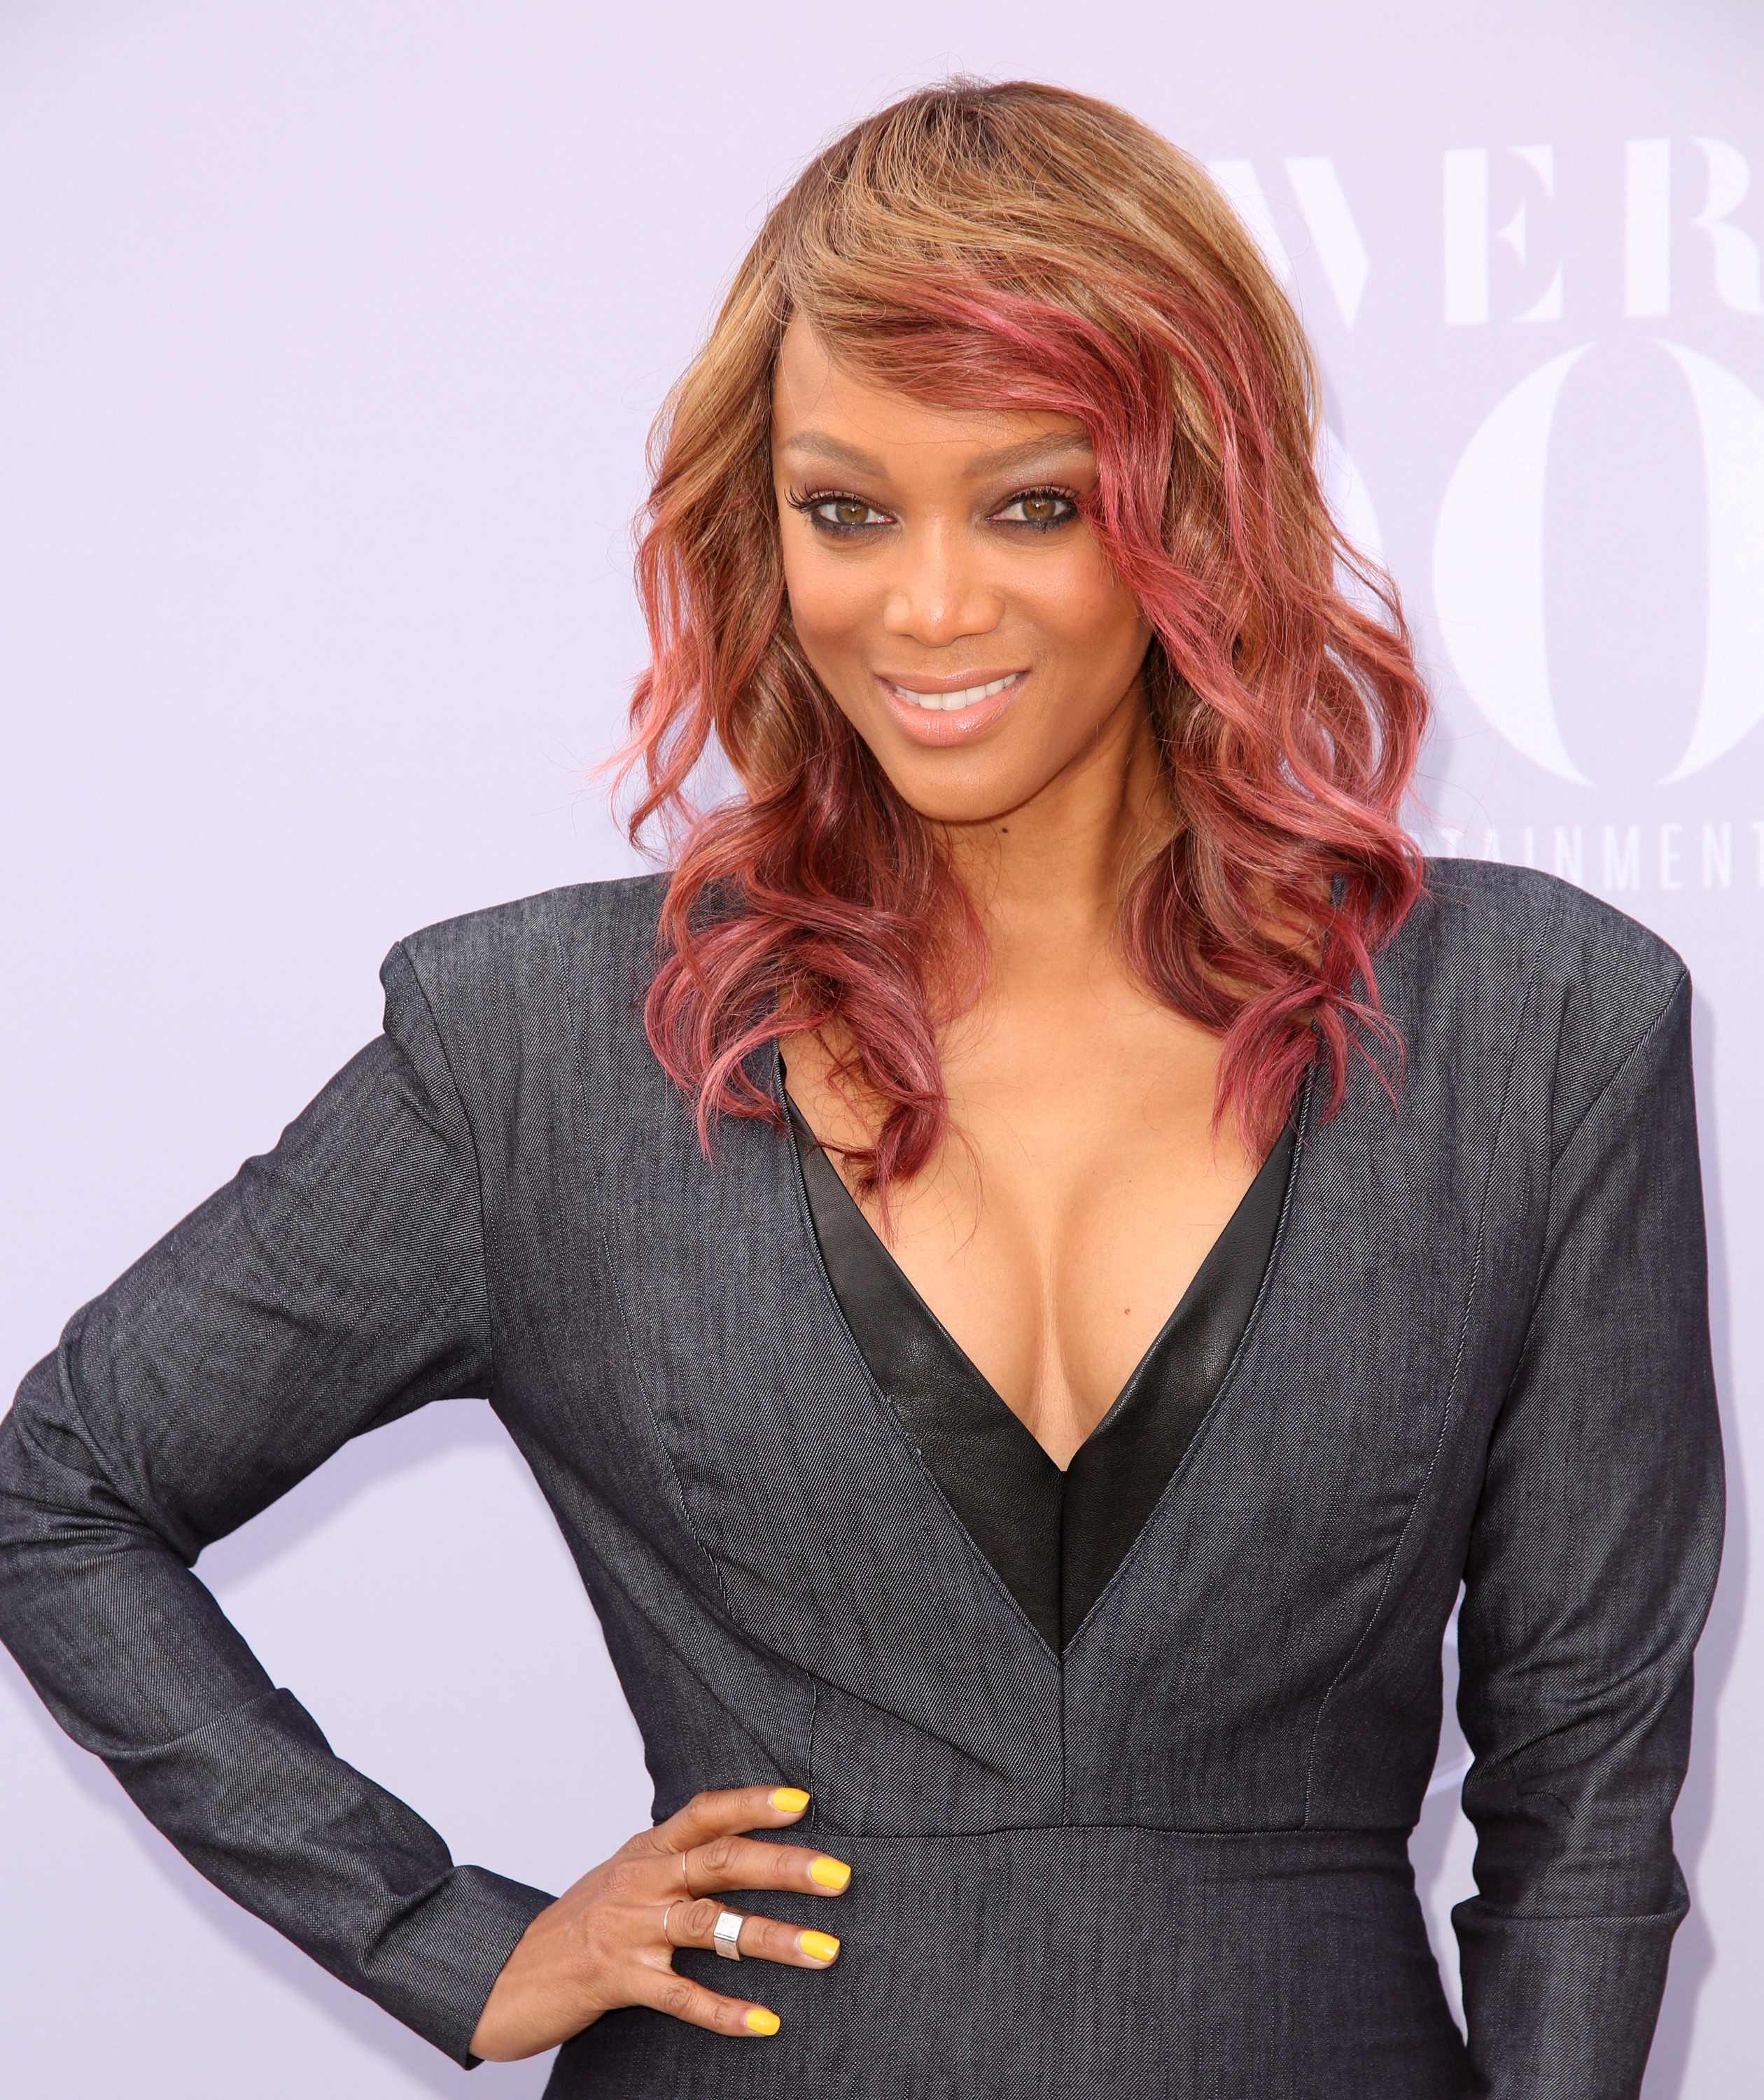 Tyra Banks University: Tyra Banks To Teach Business Class At Stanford University